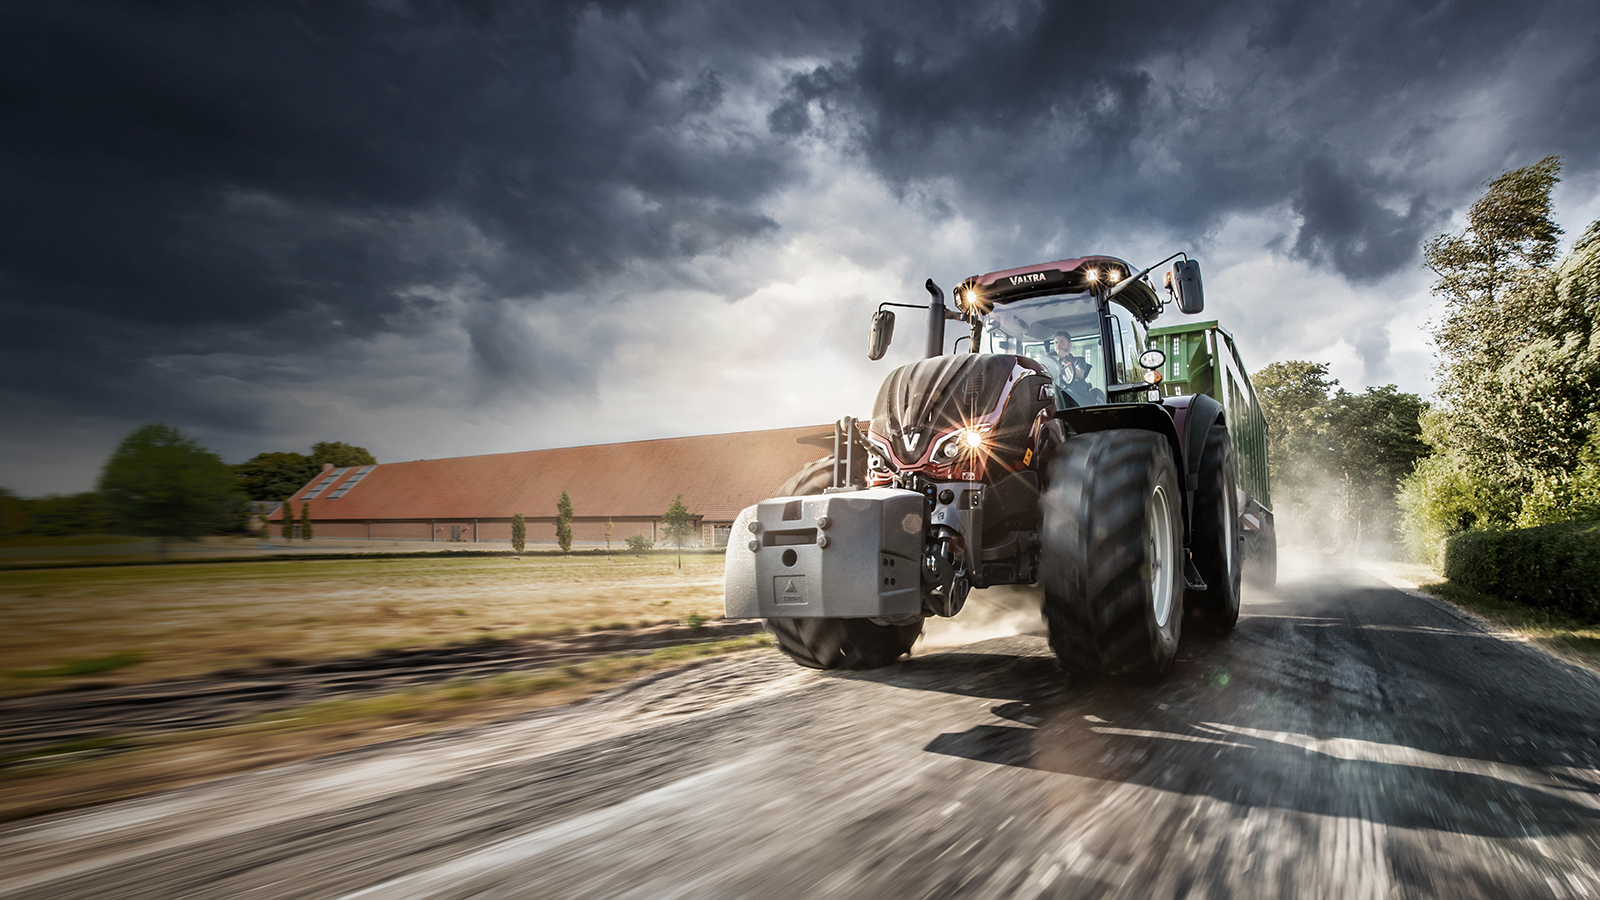 valtra t4 series wite on the field working